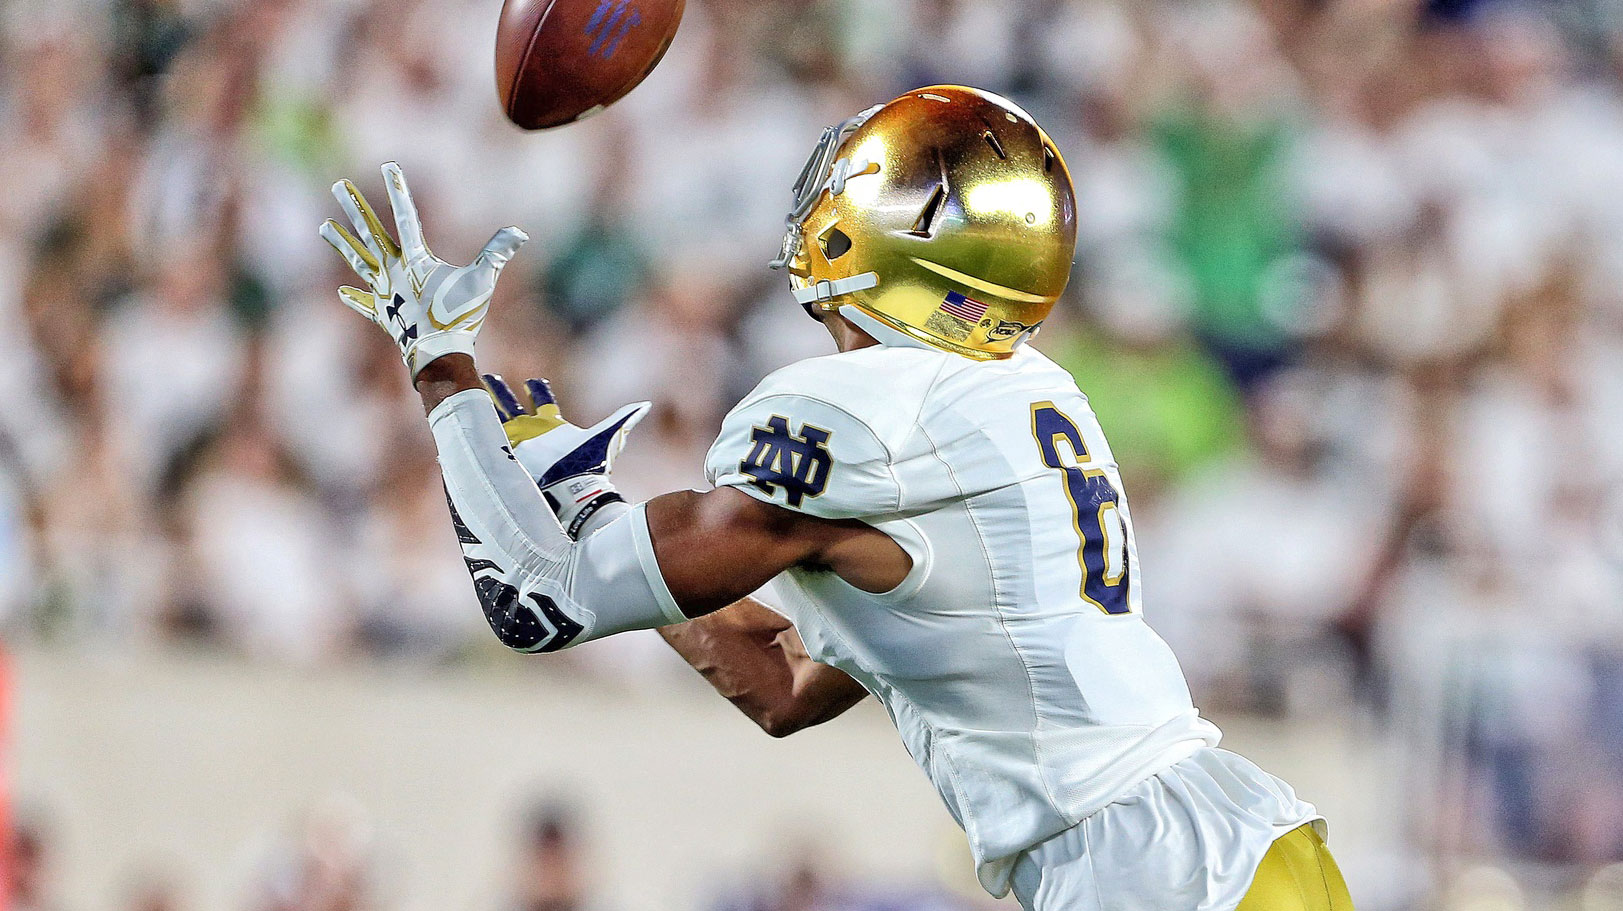 Equanimeous-st-brown-notre-dame-msu